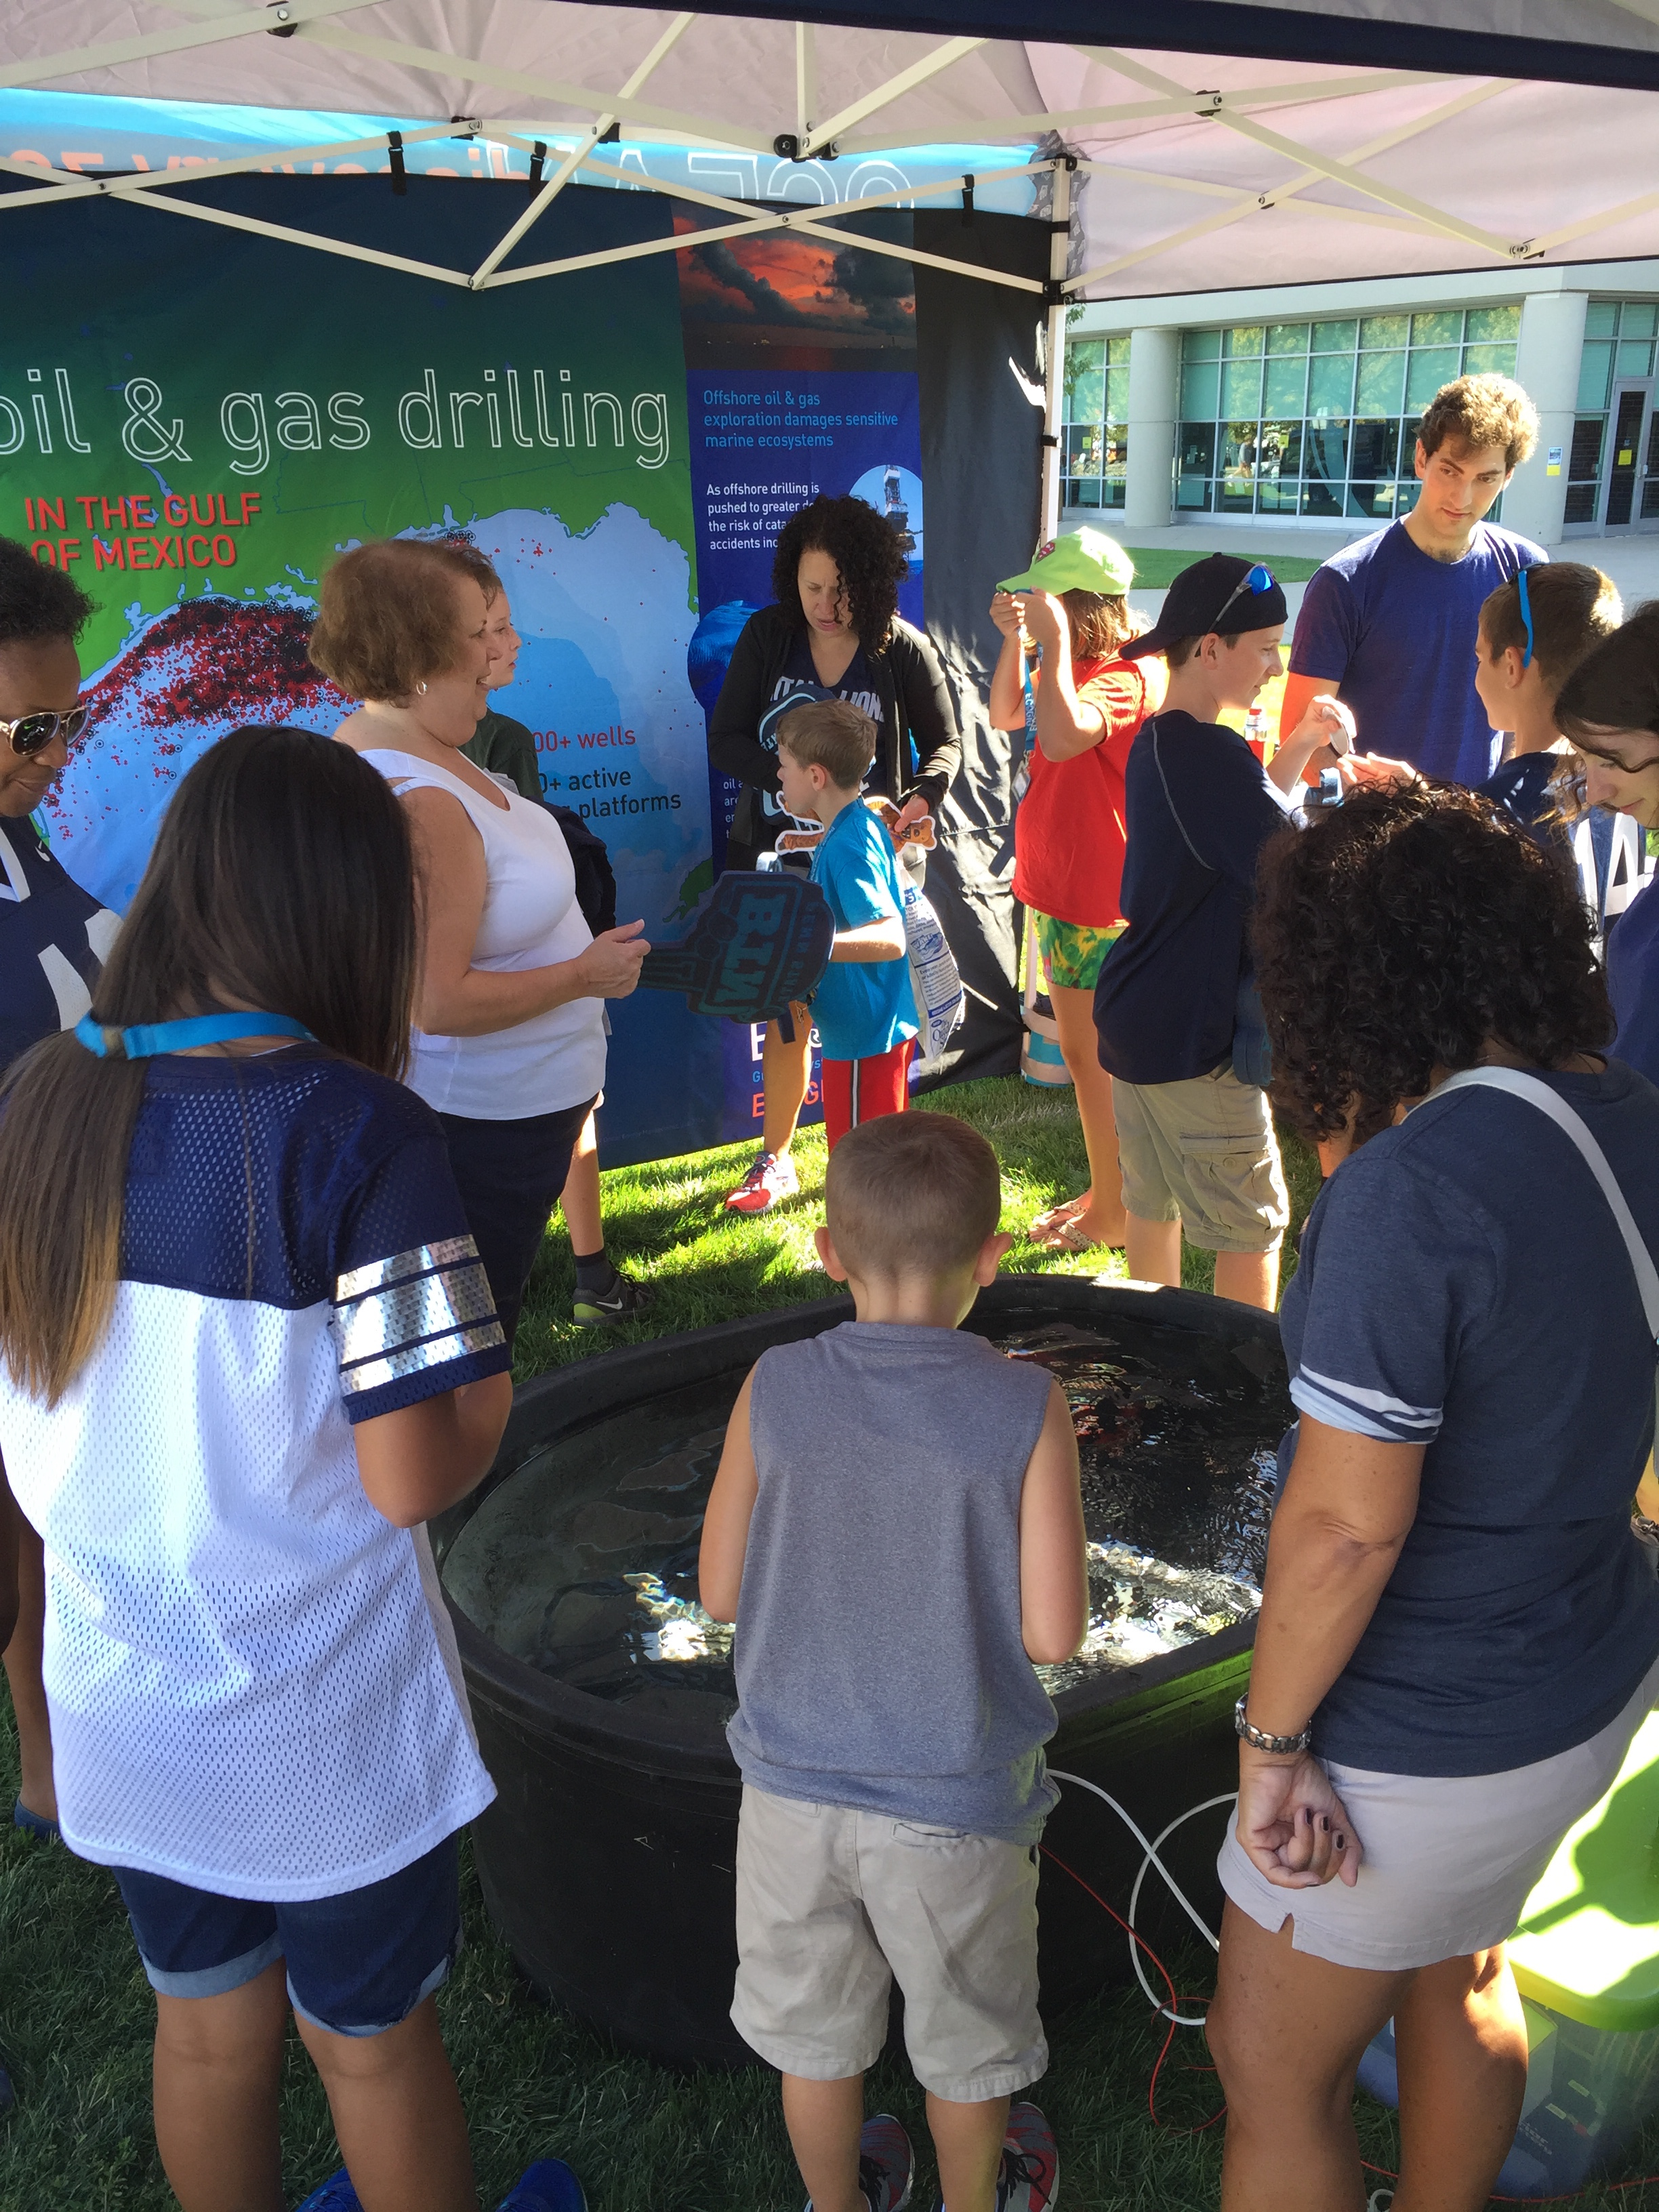 <div style='color:#000000;'><br /><br /><h2>2016 Penn State Fan Fest.  Visitors exploring the Ocean Discovery Zone before the Sept 3rd, 2016 Penn State vs Kent State game</h2>(c) ECOGIG</div>